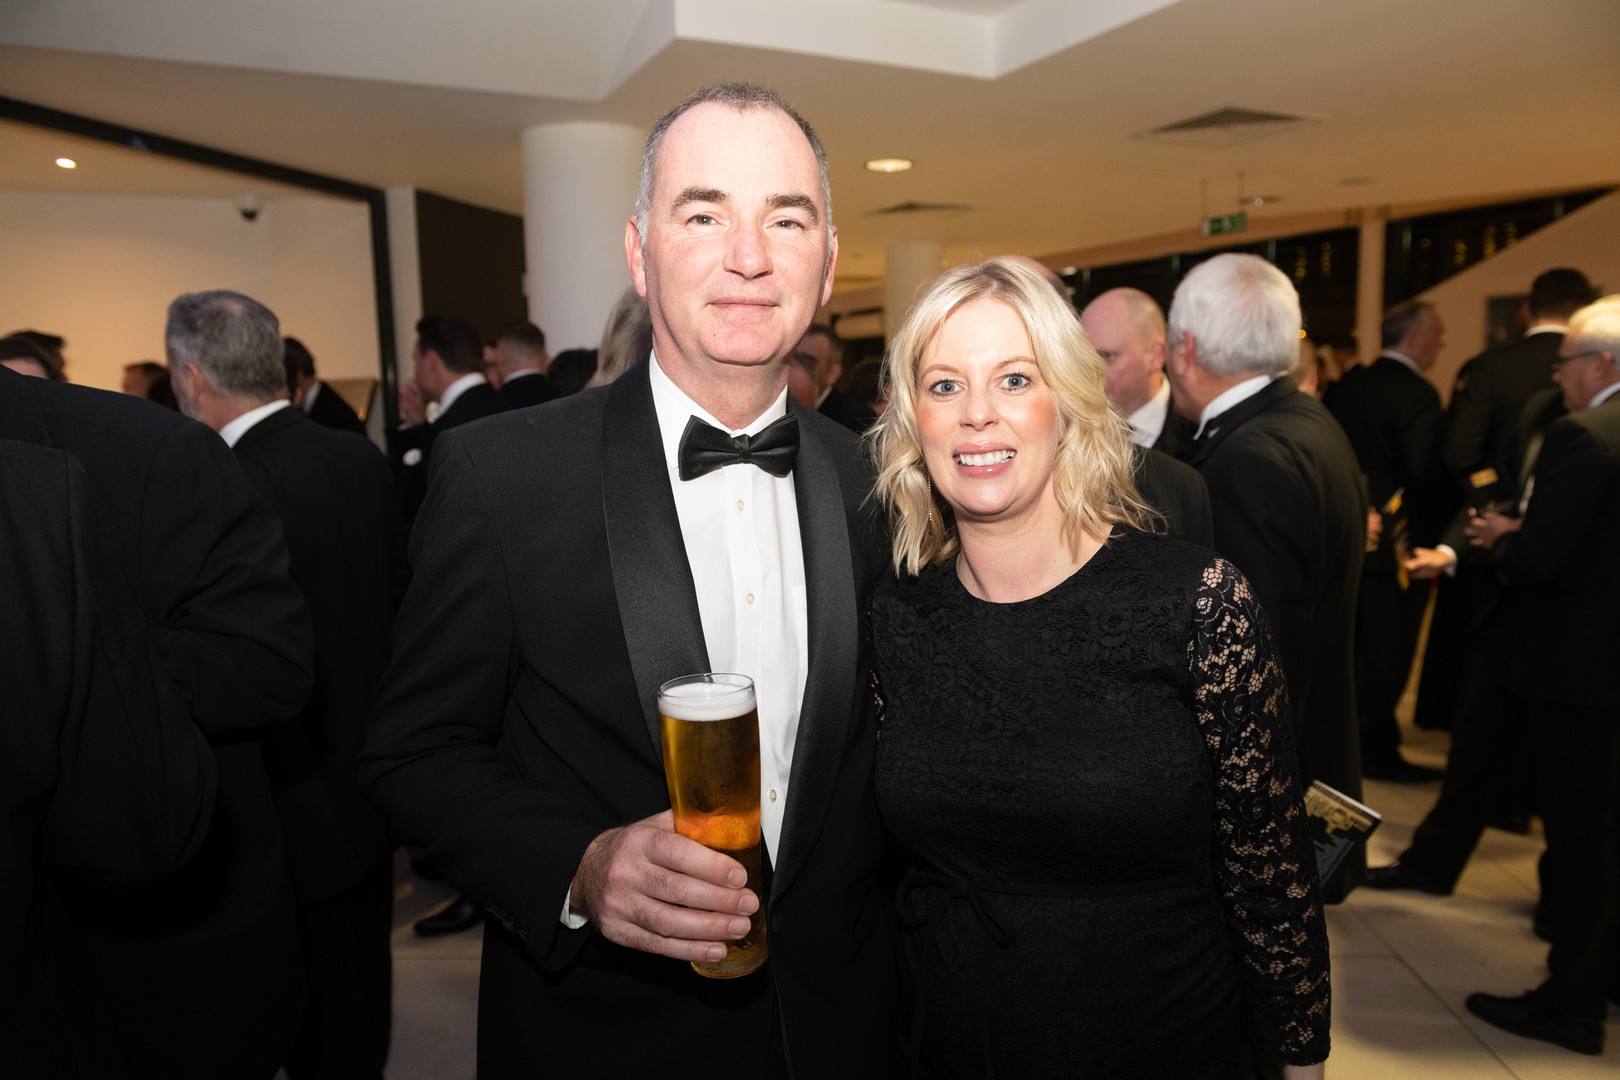 SurreyPropertyAwards_Nov2019_189.jpg